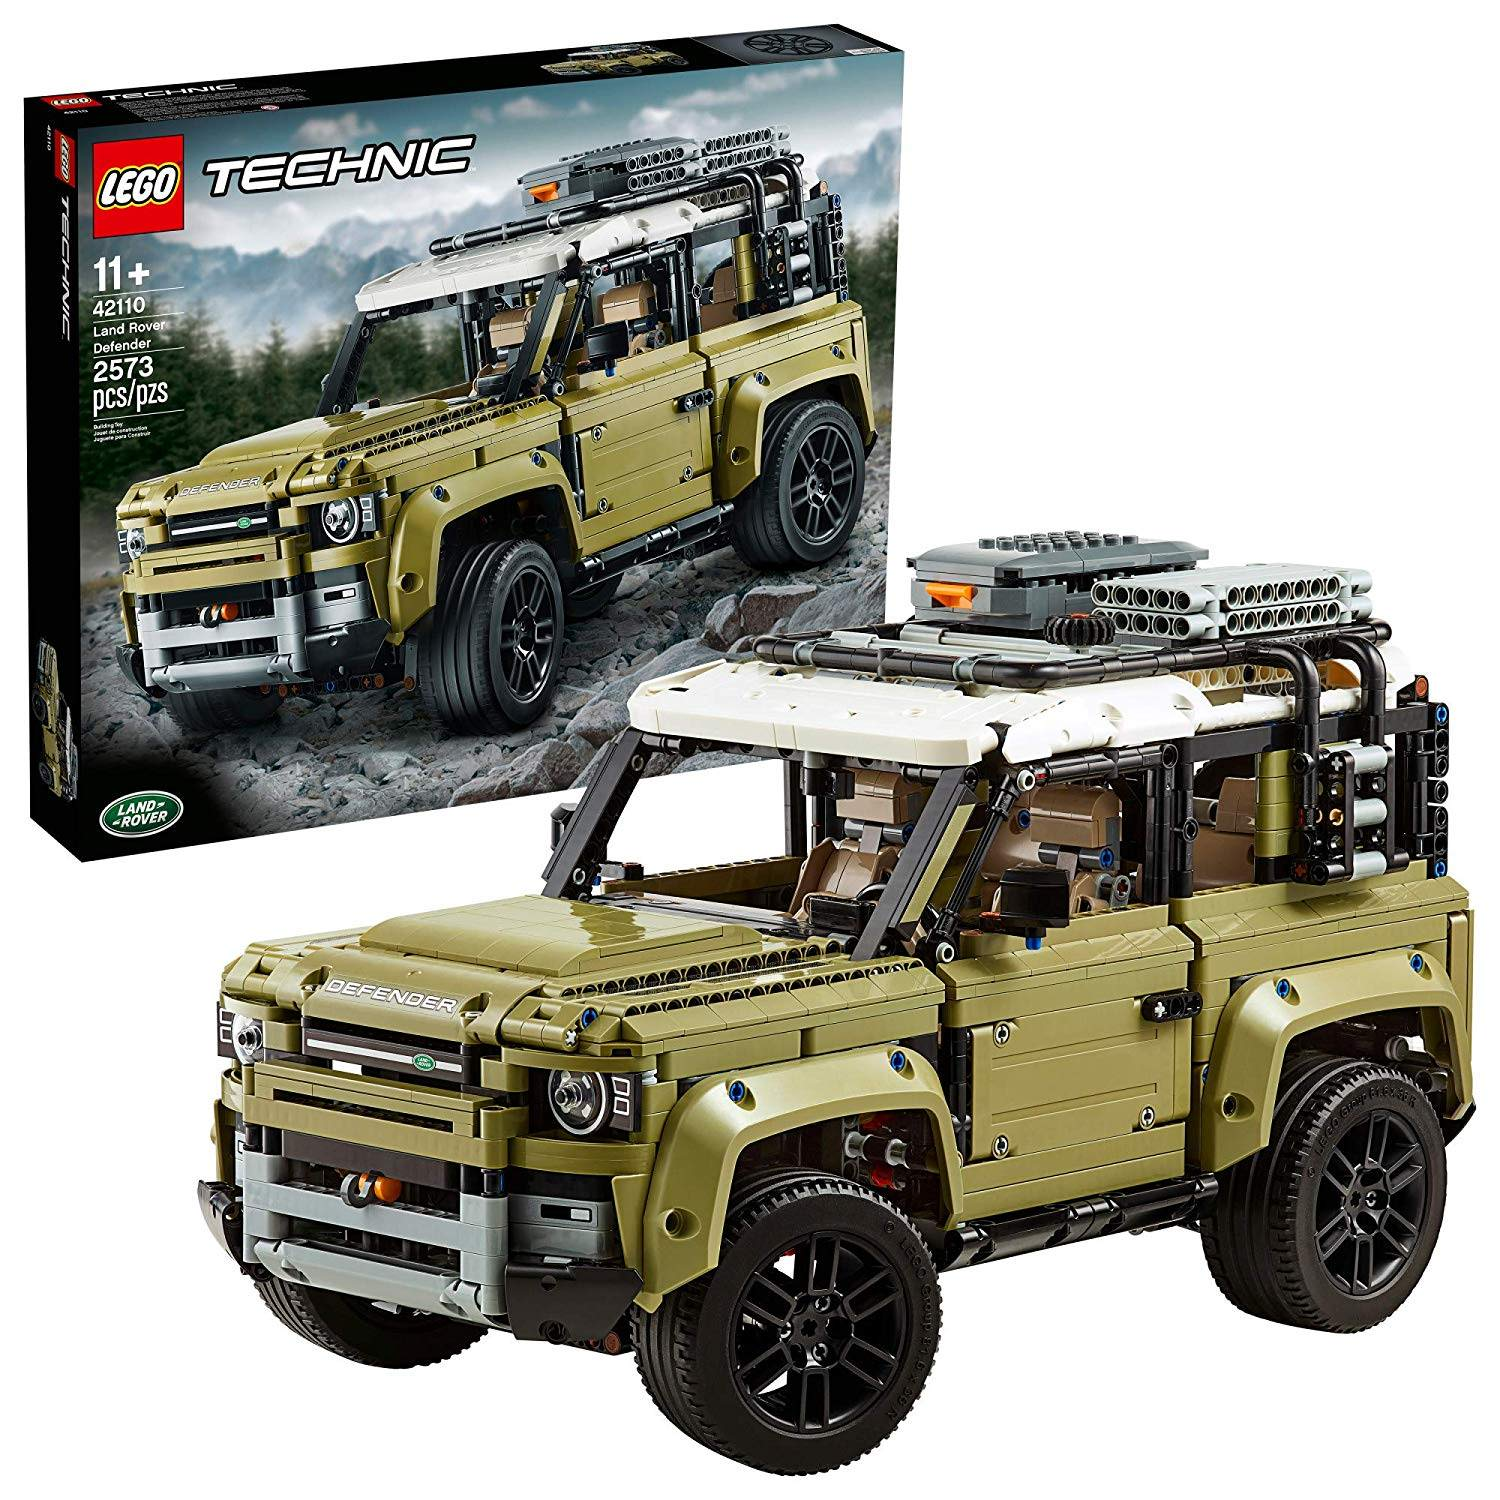 LEGO 42110: Land Rover Defender